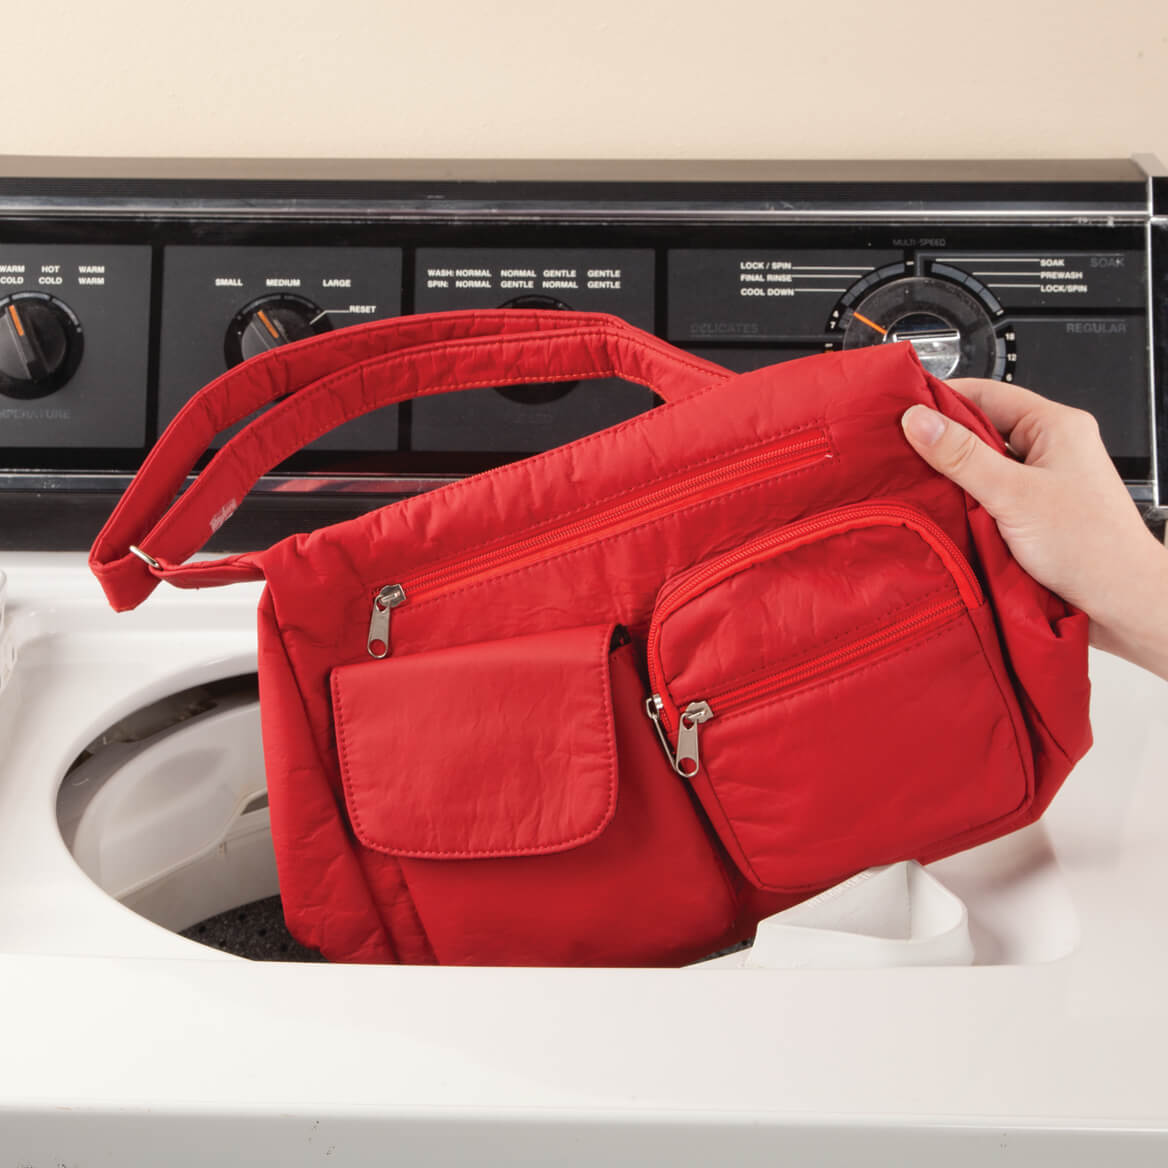 Machine Washable Handbag-348265